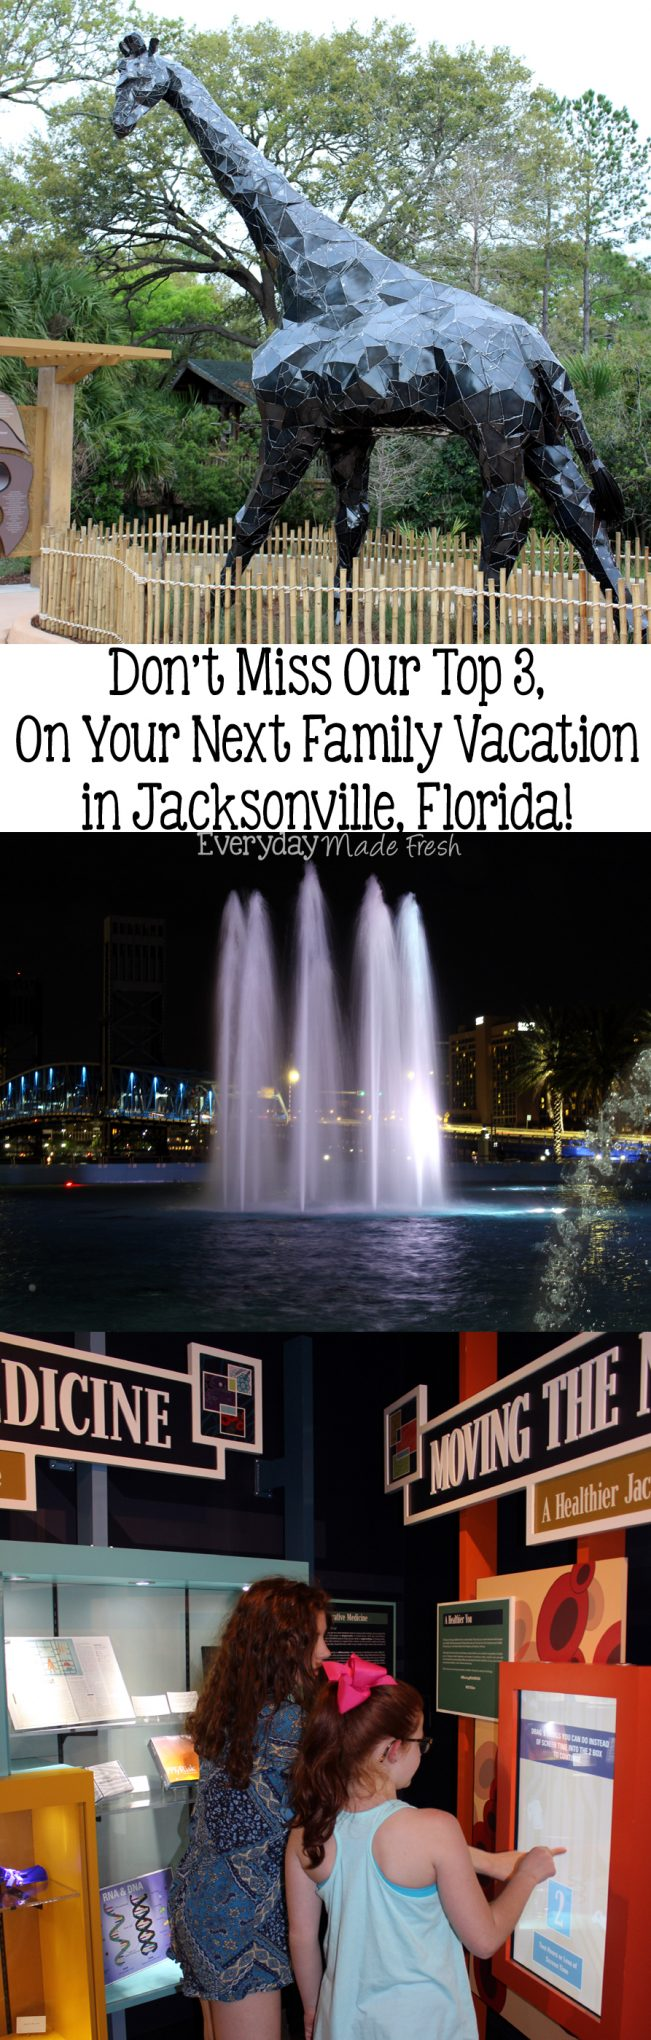 We recently spent several days in Jacksonville, and today we're sharing - Don't Miss Our Top 3, On Your Next Family Vacation in Jacksonville, Florida! | EverydayMadeFresh.com